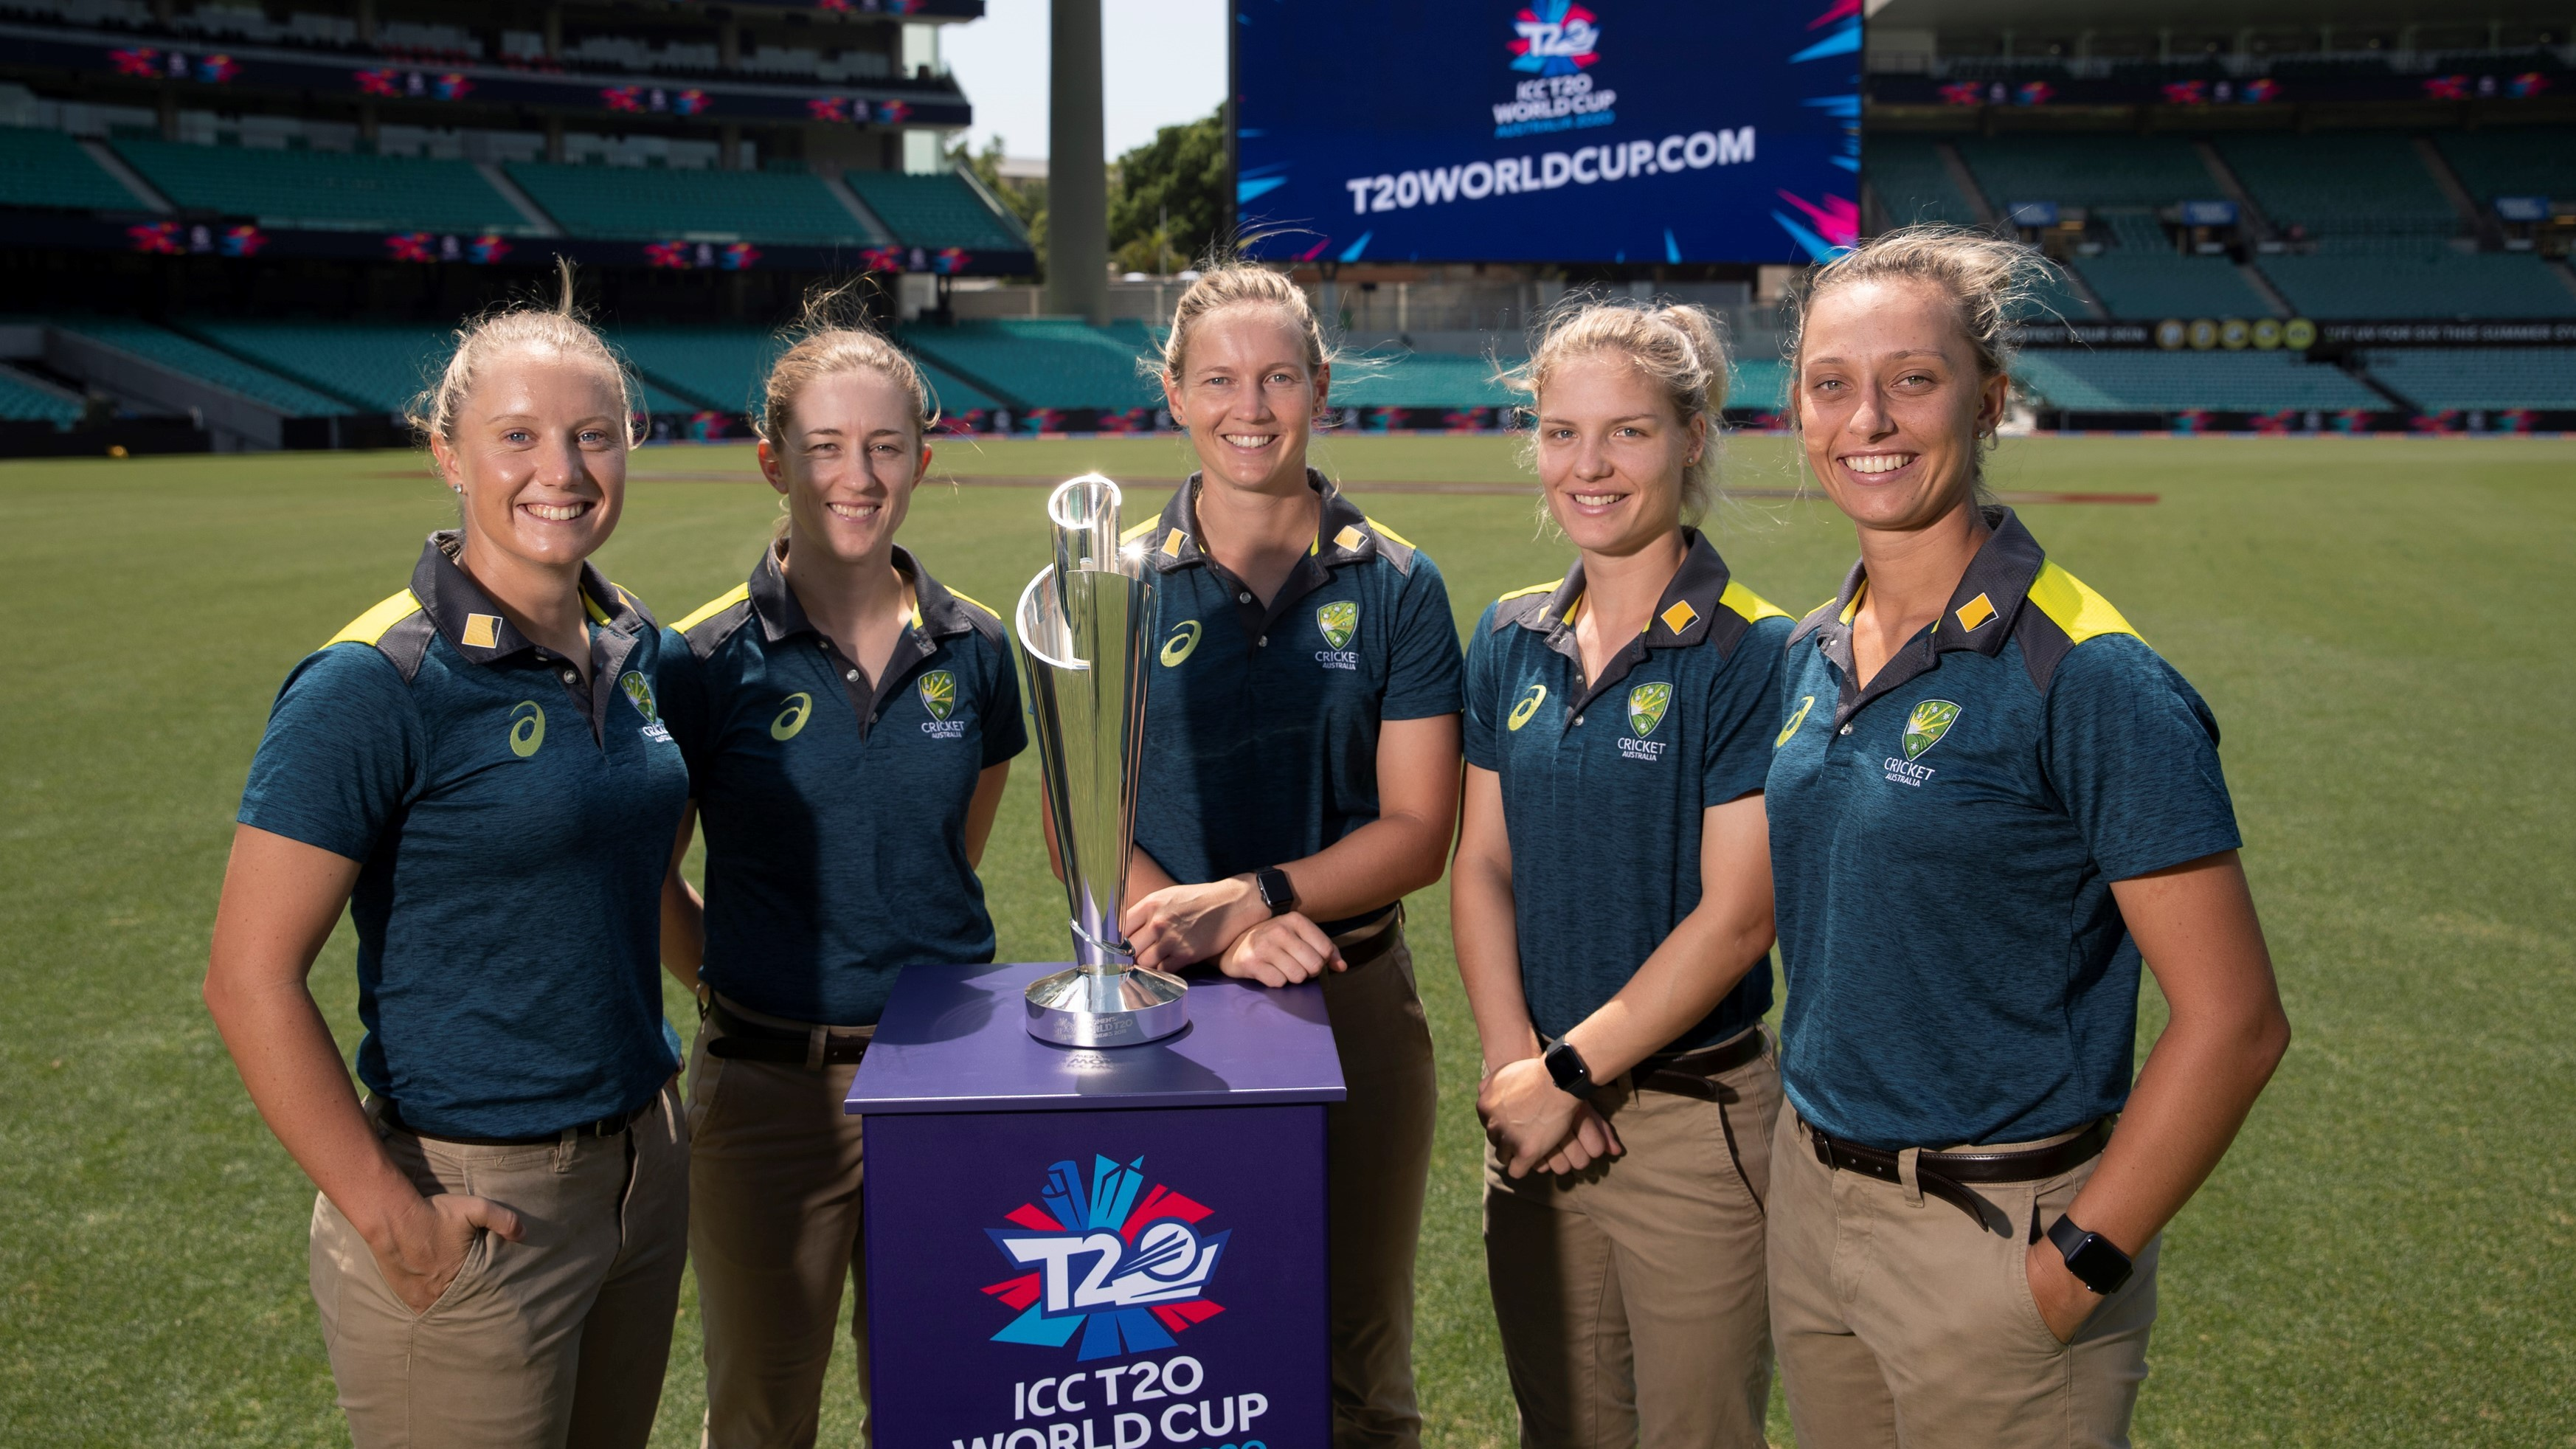 ICC increases prize money for Women's cricket events